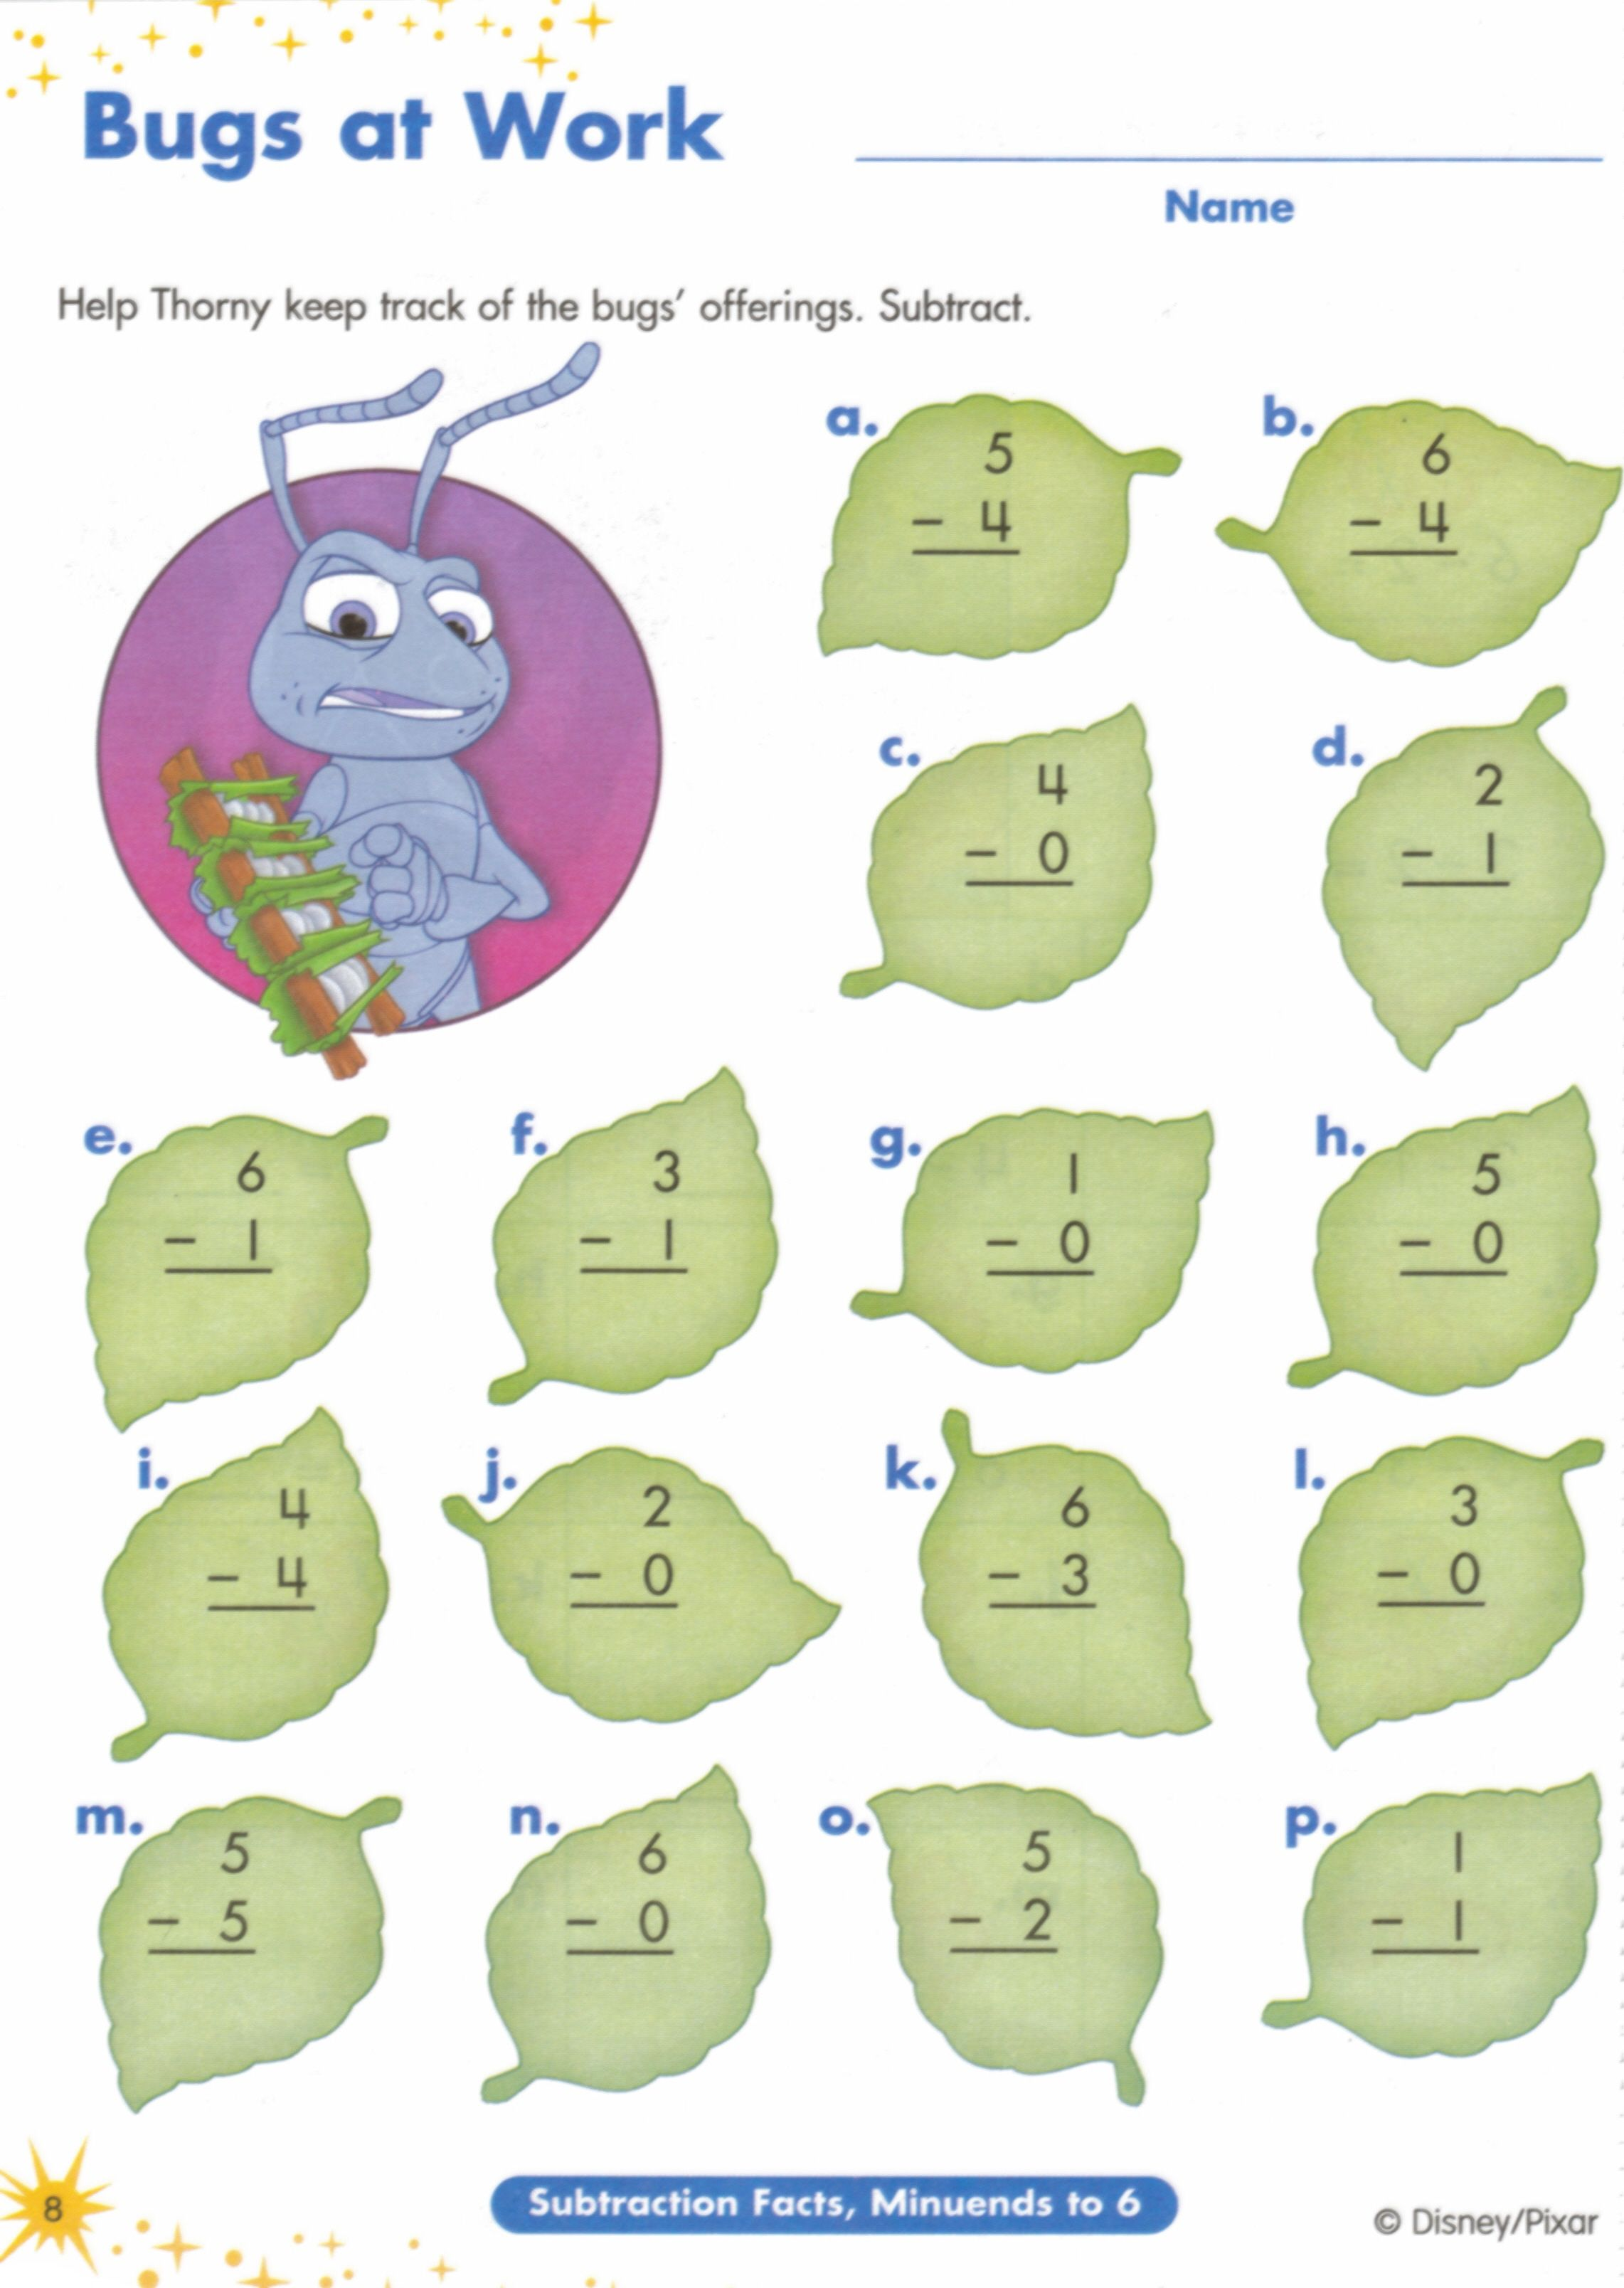 Aldiablosus  Prepossessing  Images About Worksheets On Pinterest  Fun Facts For Kids  With Luxury  Images About Worksheets On Pinterest  Fun Facts For Kids Earth Day Worksheets And Jungles With Divine Worksheets On Ordering Numbers Also Maths Worksheet For Grade  In Addition Preschool Learning Worksheets Printable And Write Decimals As Fractions Worksheet As Well As Sorting D Shapes Worksheet Additionally Preposition Exercises Worksheets From Pinterestcom With Aldiablosus  Luxury  Images About Worksheets On Pinterest  Fun Facts For Kids  With Divine  Images About Worksheets On Pinterest  Fun Facts For Kids Earth Day Worksheets And Jungles And Prepossessing Worksheets On Ordering Numbers Also Maths Worksheet For Grade  In Addition Preschool Learning Worksheets Printable From Pinterestcom